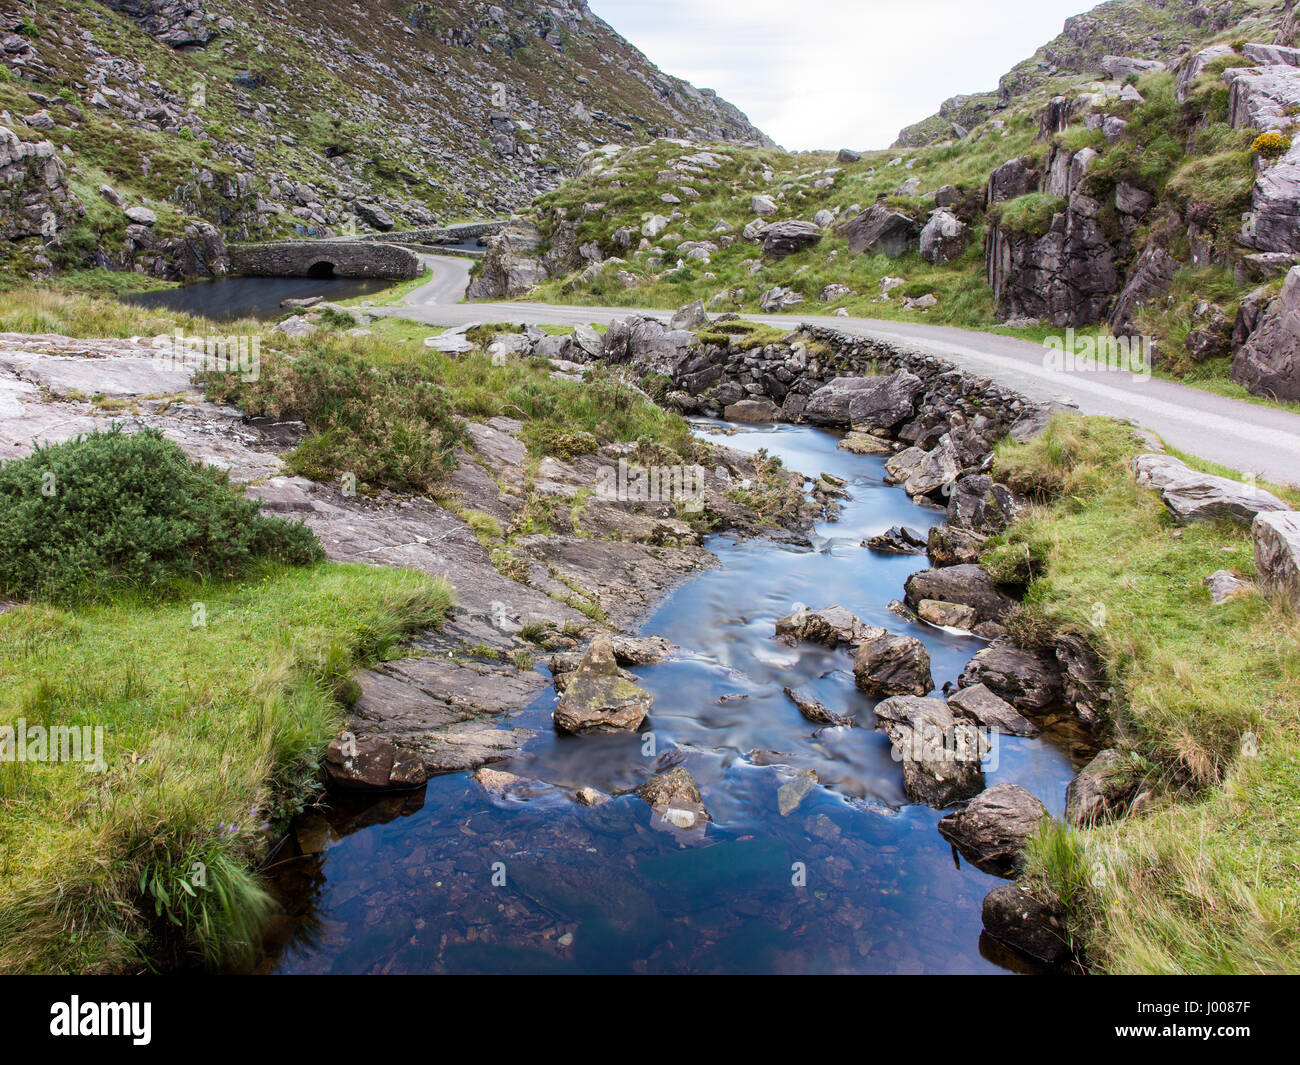 The River Loe & narrow mountain road wind through the Gap of Dunloe valley, nestled in the Macgillycuddy's Reeks Stock Photo